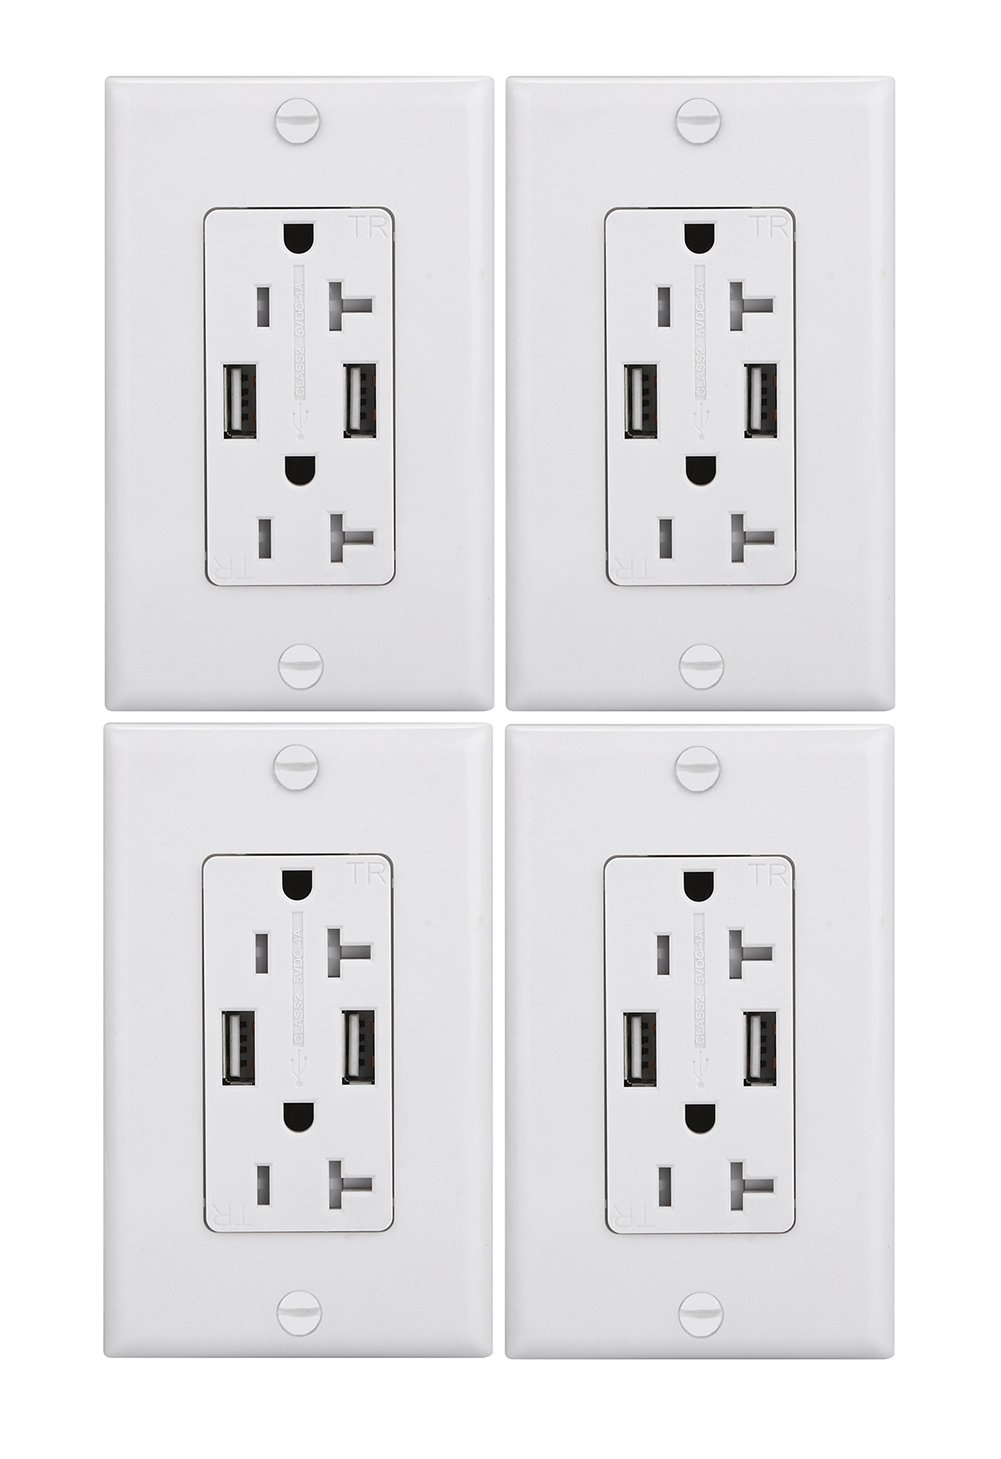 Anboter Duplex Receptacle Outlet ETL Certified Safety 4.0Amp Smart DC 2xUSB A Charger Socket/Outlet 20Amp Tamper Resistant Duplex Receptacle White (4 Pack,include one USB Type C Cable)